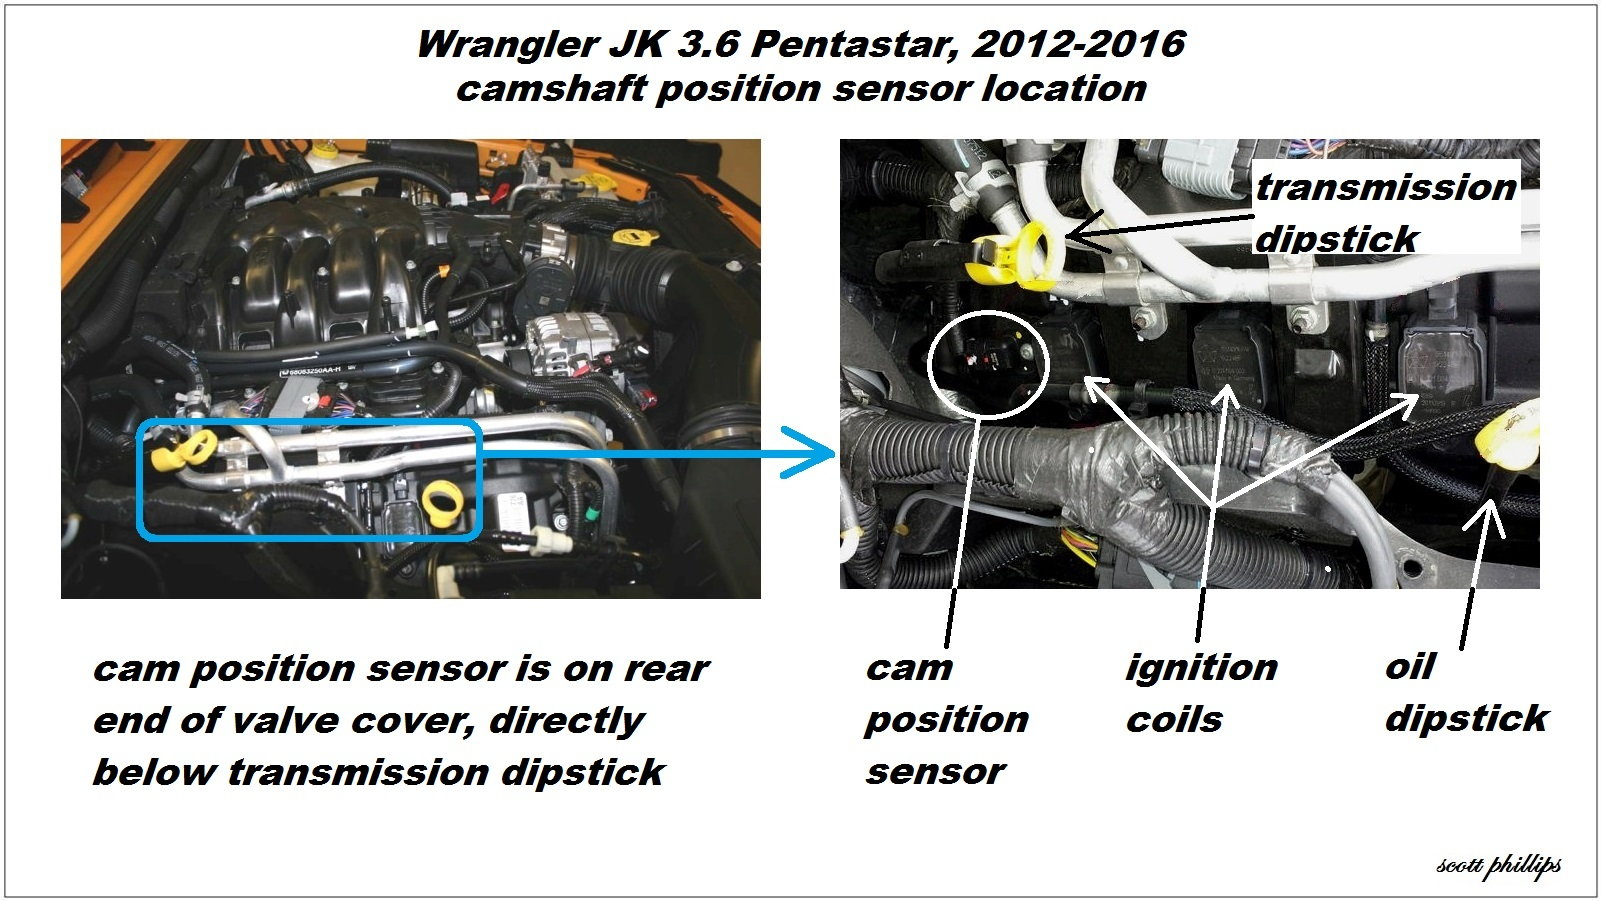 jeep wrangler jk 2007 to present how to replace camshaft 95 Jeep Wrangler Wiring Diagram Jeep Wrangler Wiring Harness Diagram